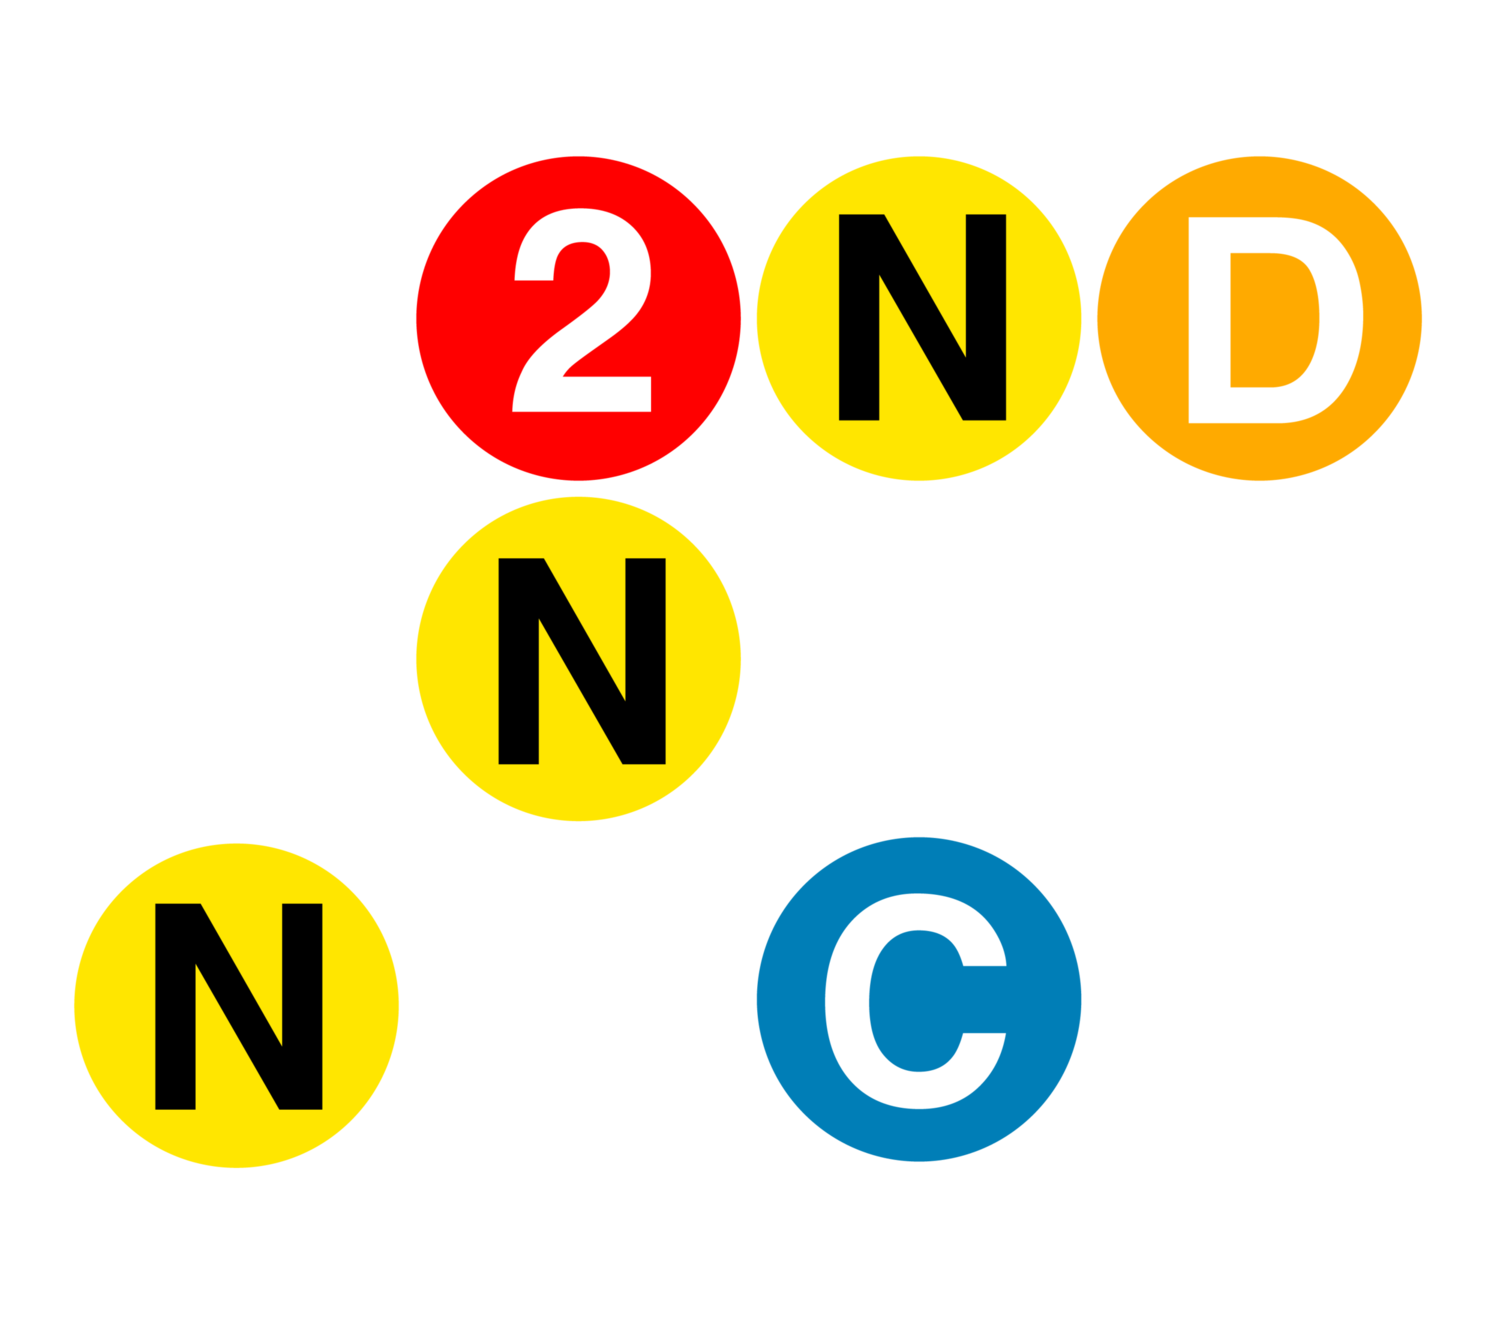 2nd Unit NYC